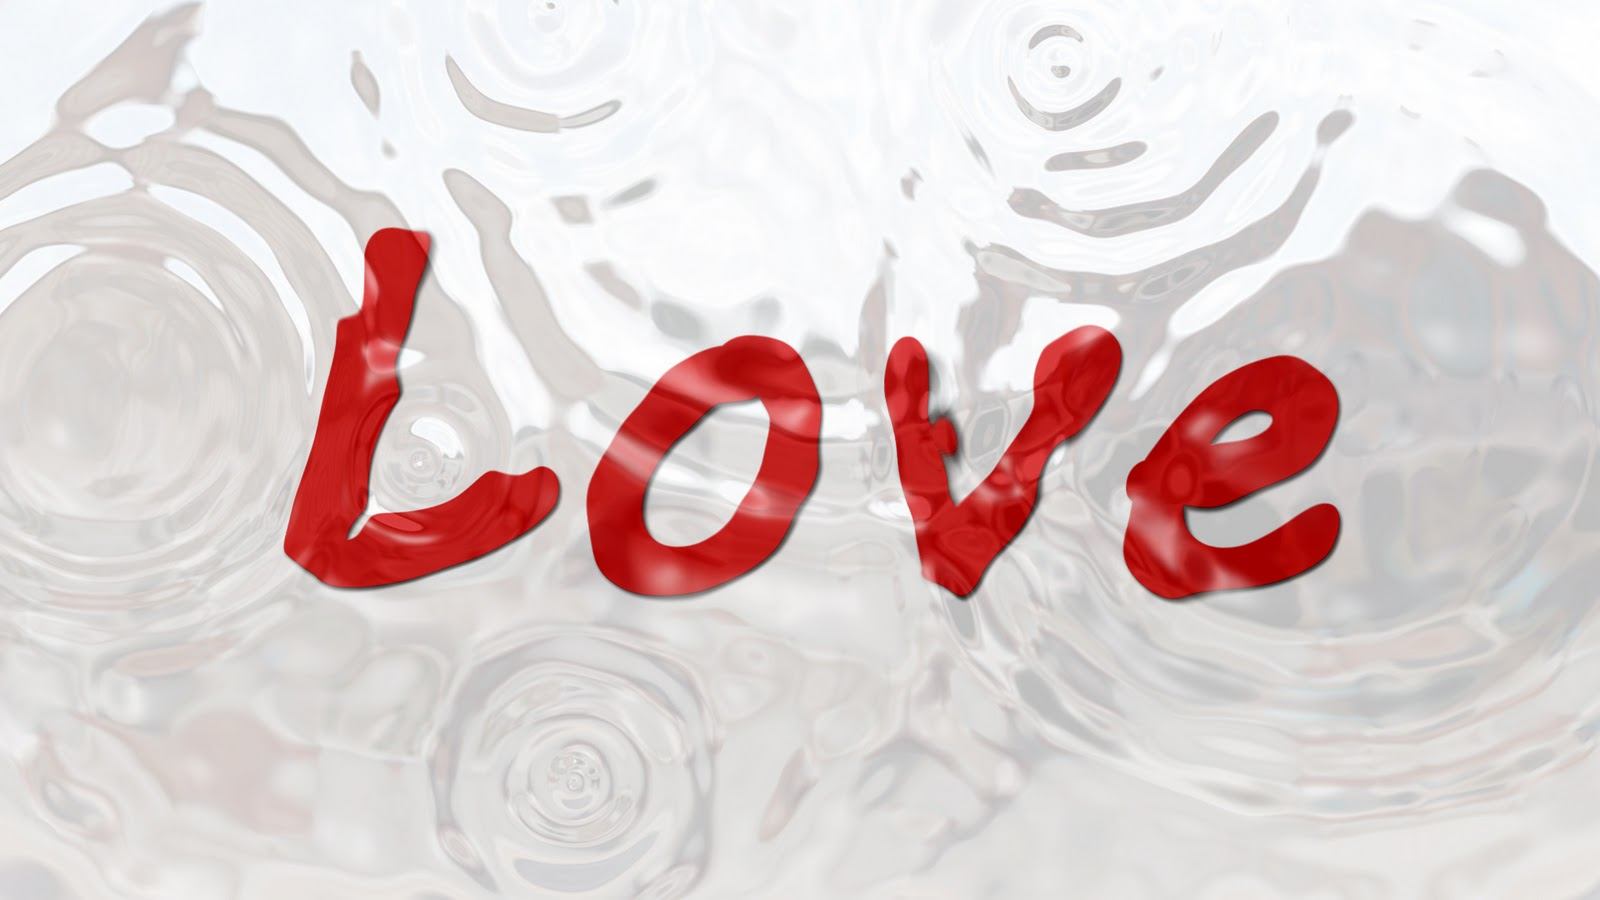 Love Wallpaper In Name : Desktop Wallpapers,Animals Wallpapers,Flowers Wallpapers, Birds Wallpapers ,Sad Poetry ...